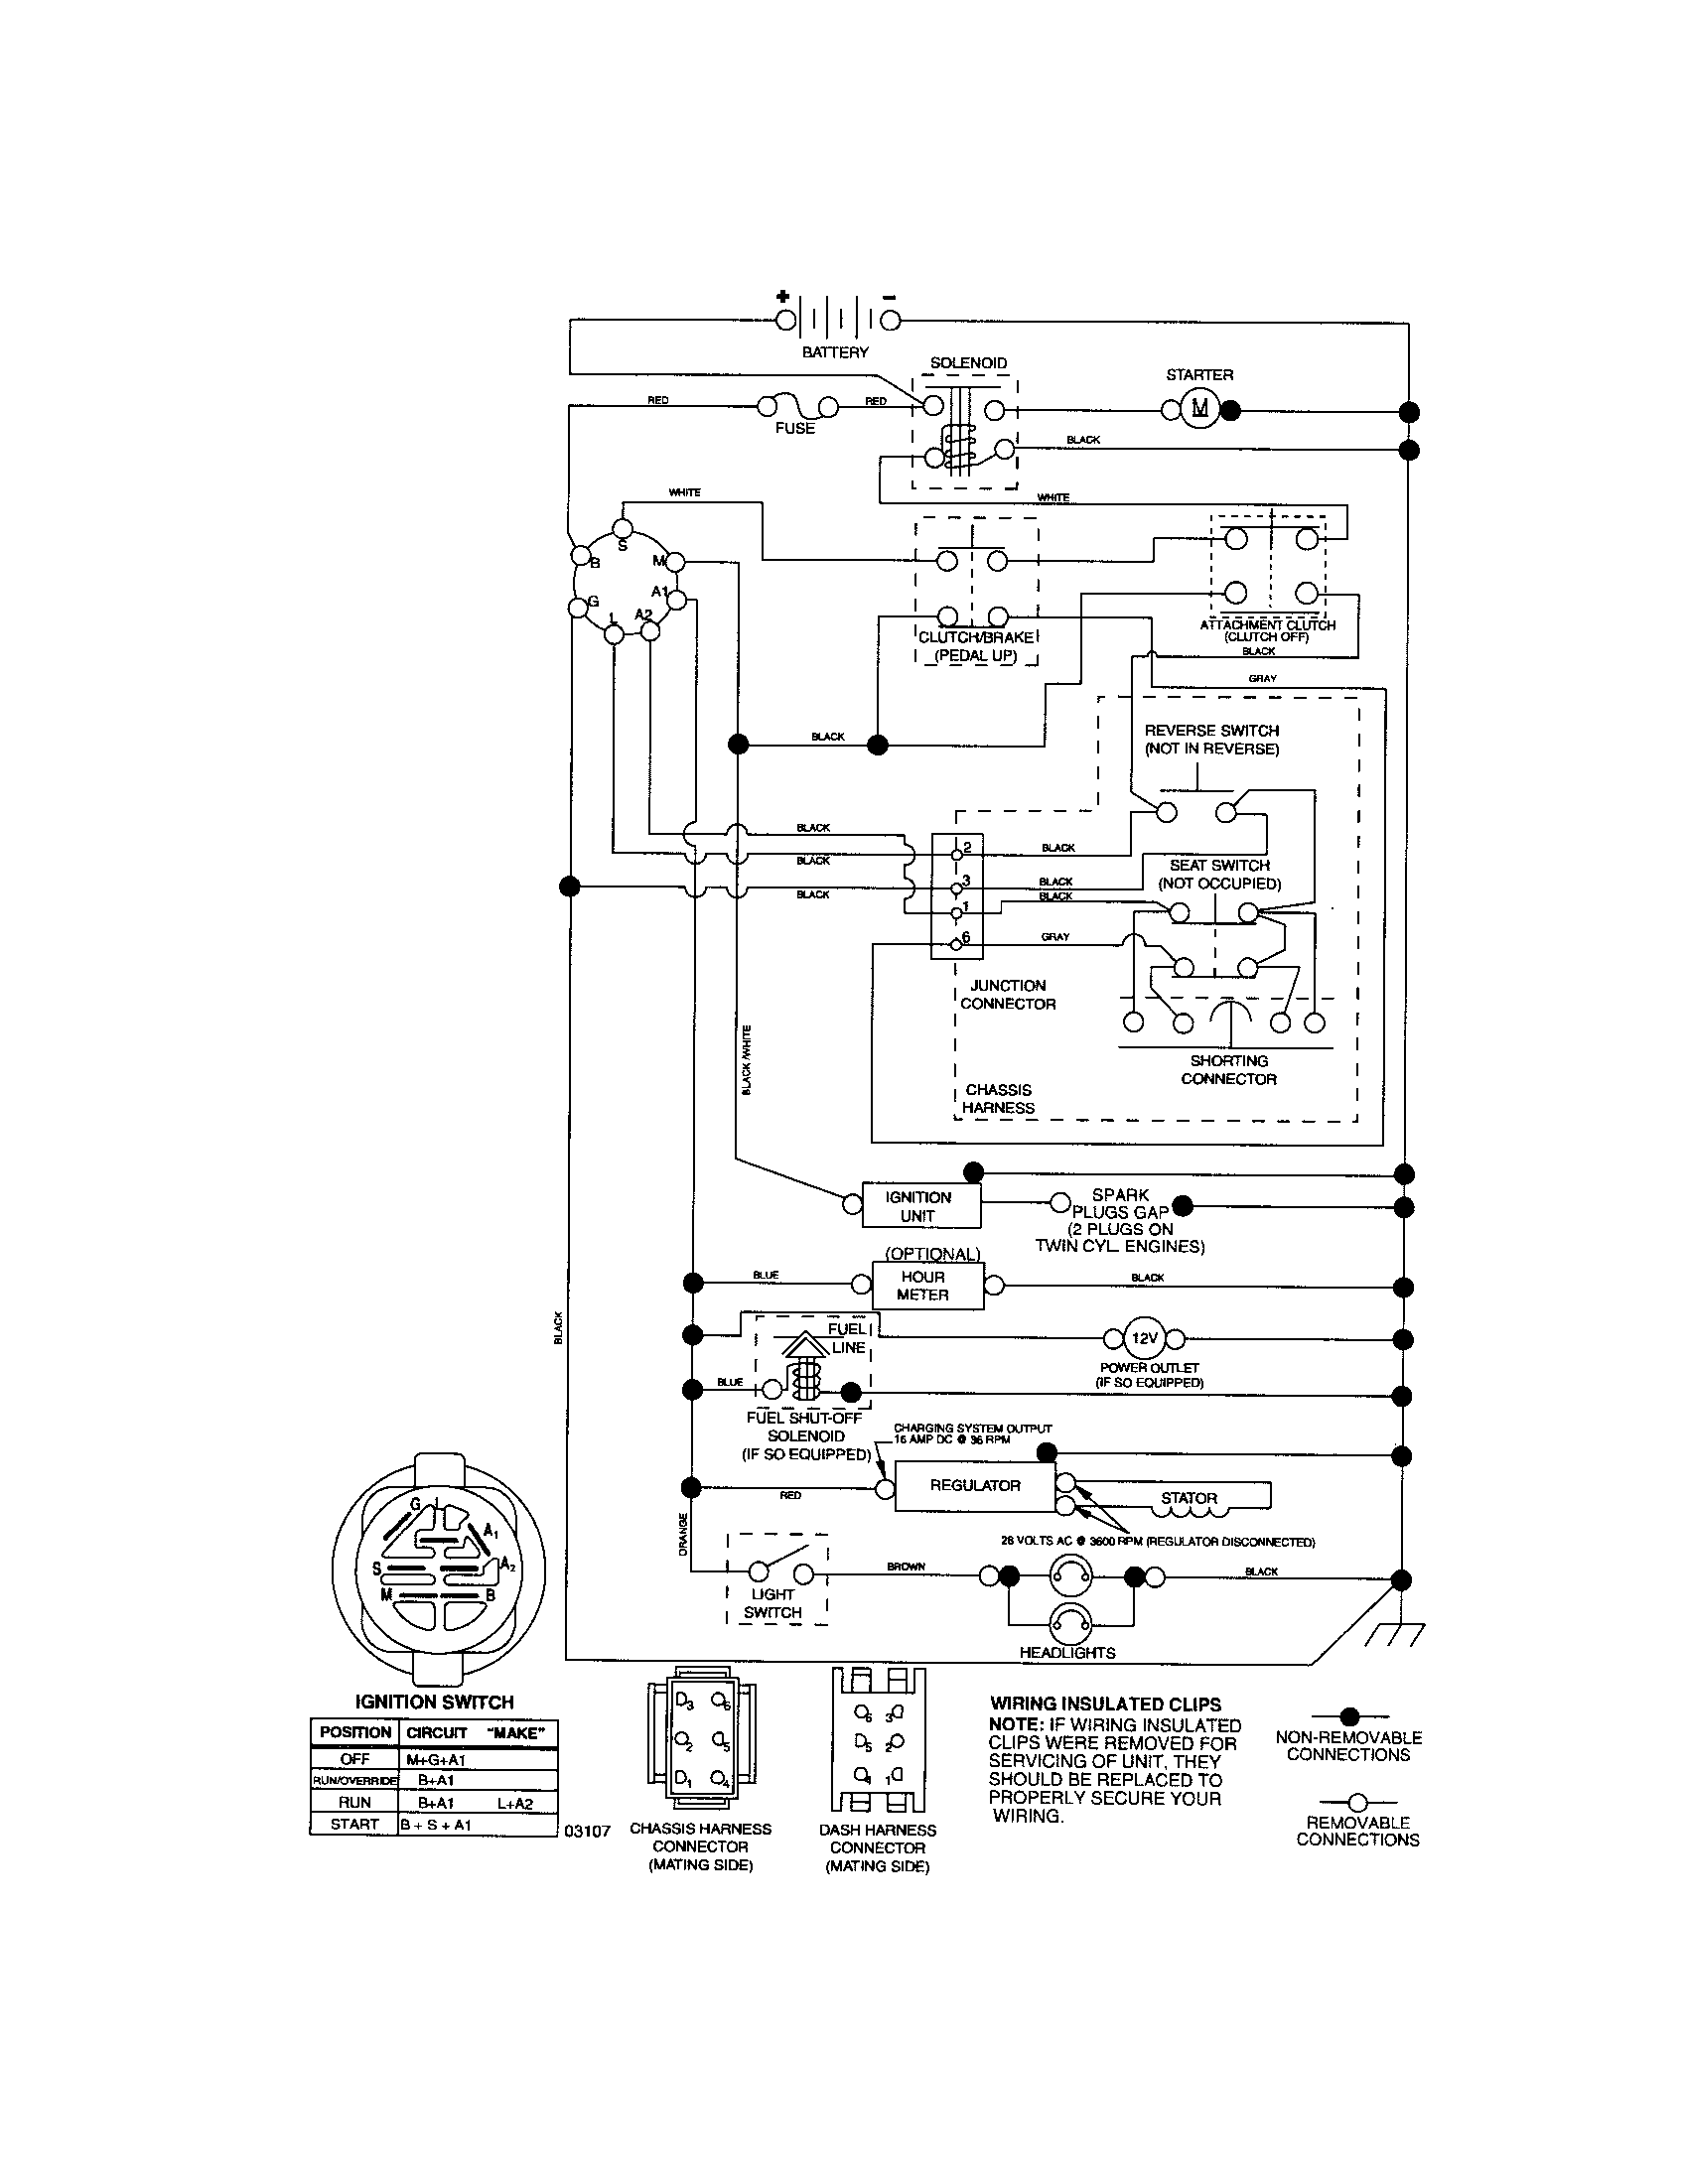 6af5f1447fd13c8443376822ddc1e105 craftsman riding mower electrical diagram wiring diagram  at bakdesigns.co